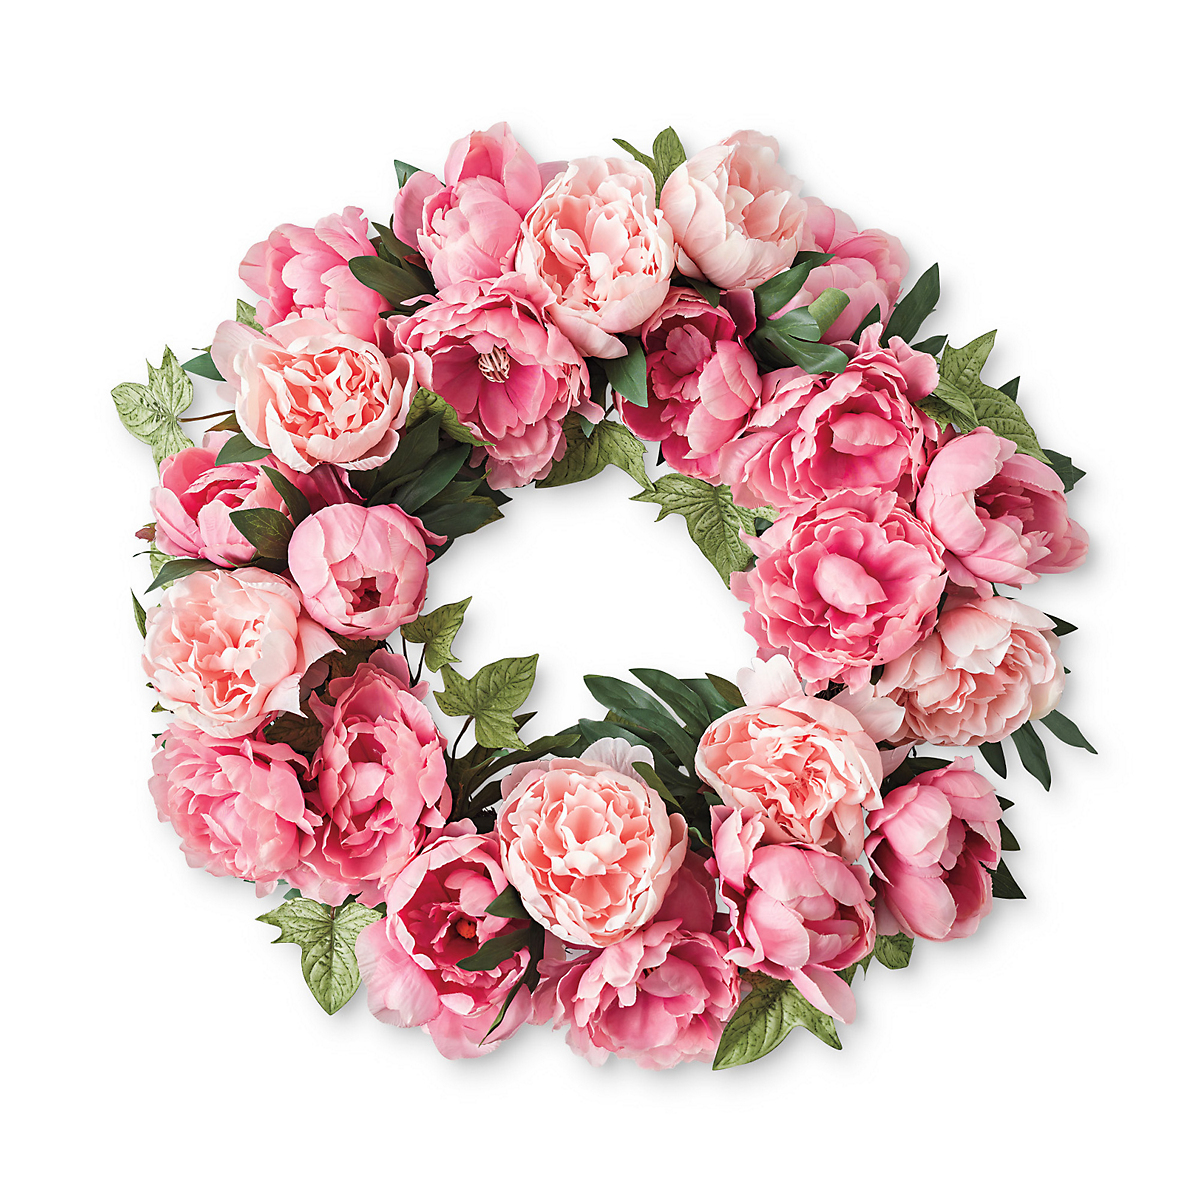 Heirloom Peony Wreath